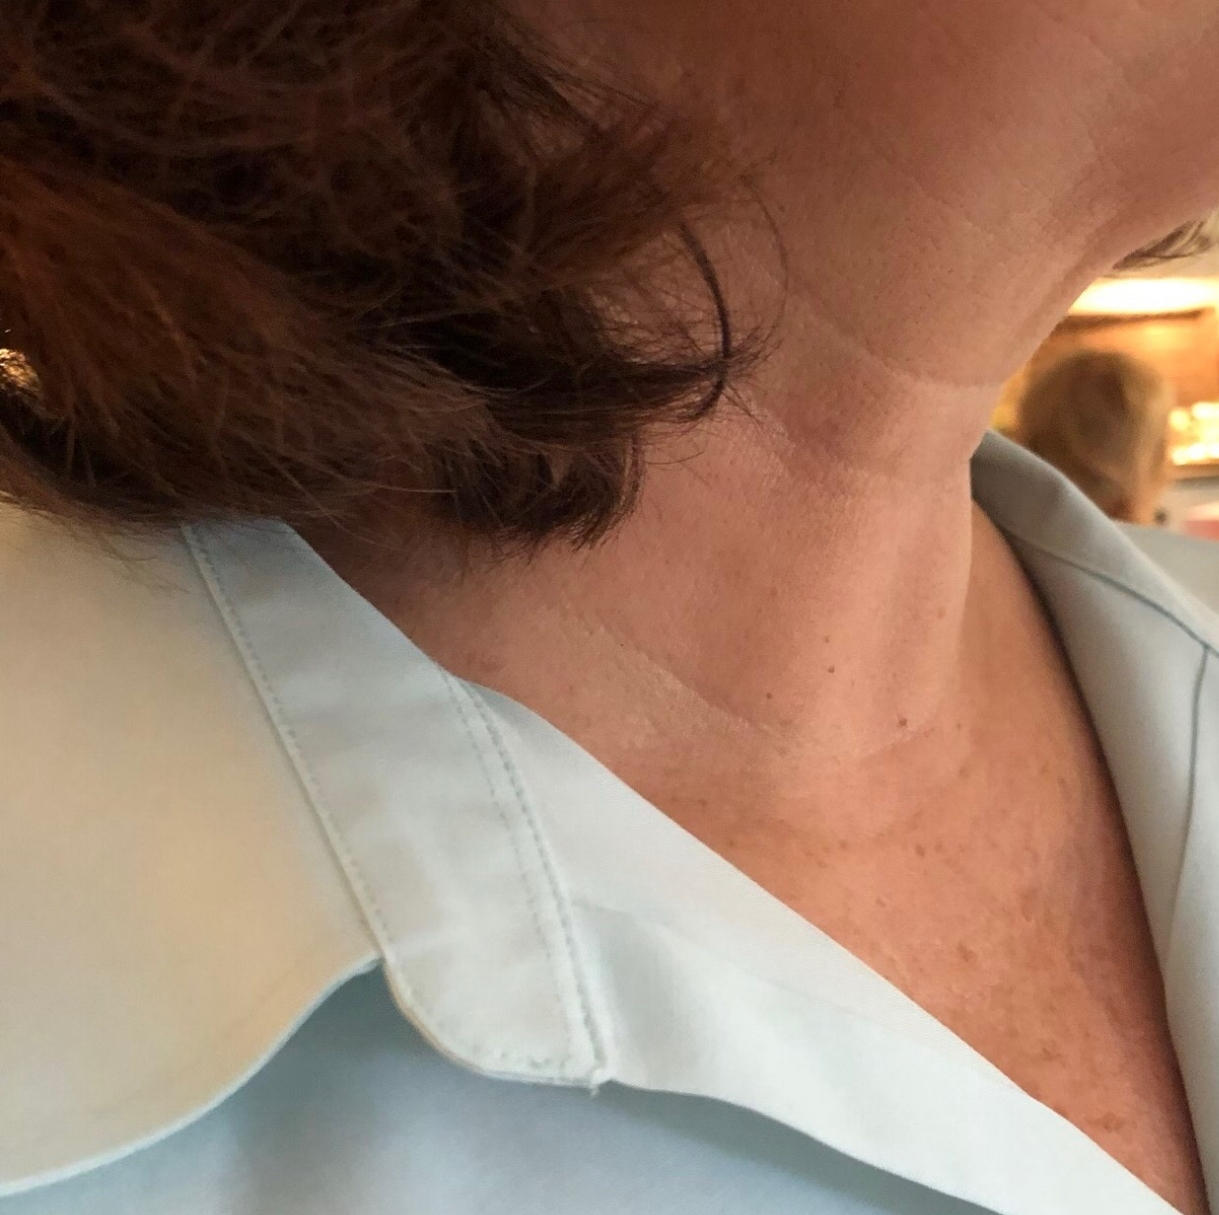 """Judy B: Week 1 - """"In my line of work as a flight attendant, I am constantly using my neck to look down and around either before flights or during with customers and servicing their needs. I didn't know if this would work or aid in my life, but I decided to try it."""""""